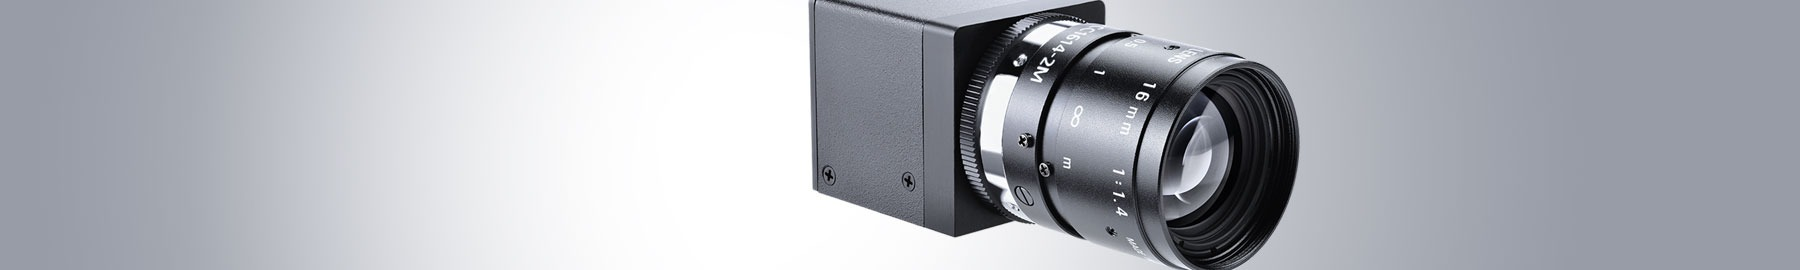 Machine Vision Cameras - STEMMER IMAGING